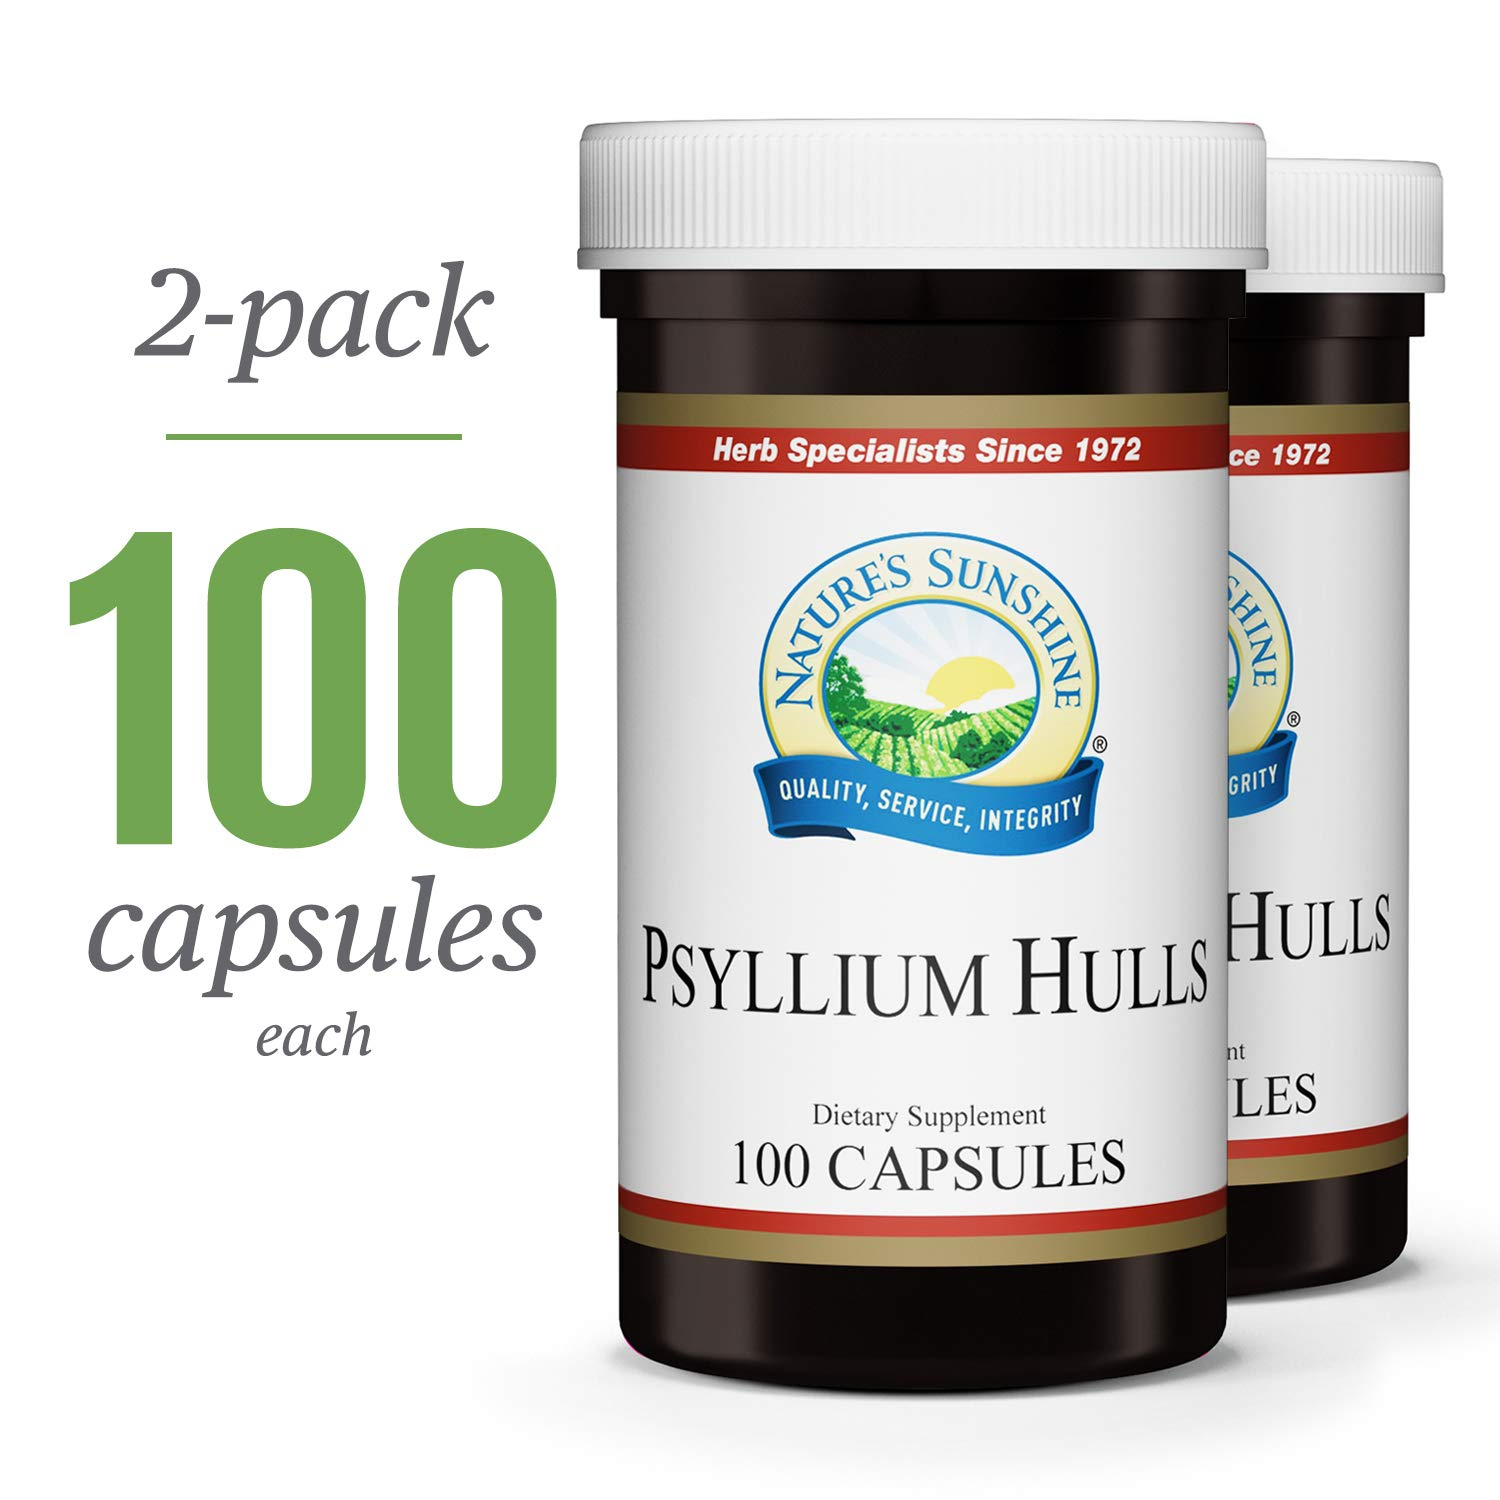 Nature's Sunshine Psyllium Hull, 100 Capsules, 2 Pack | Organic Intestinal System Support is High in Soluble Fiber Which Facilitates The Process of Waste Elimination